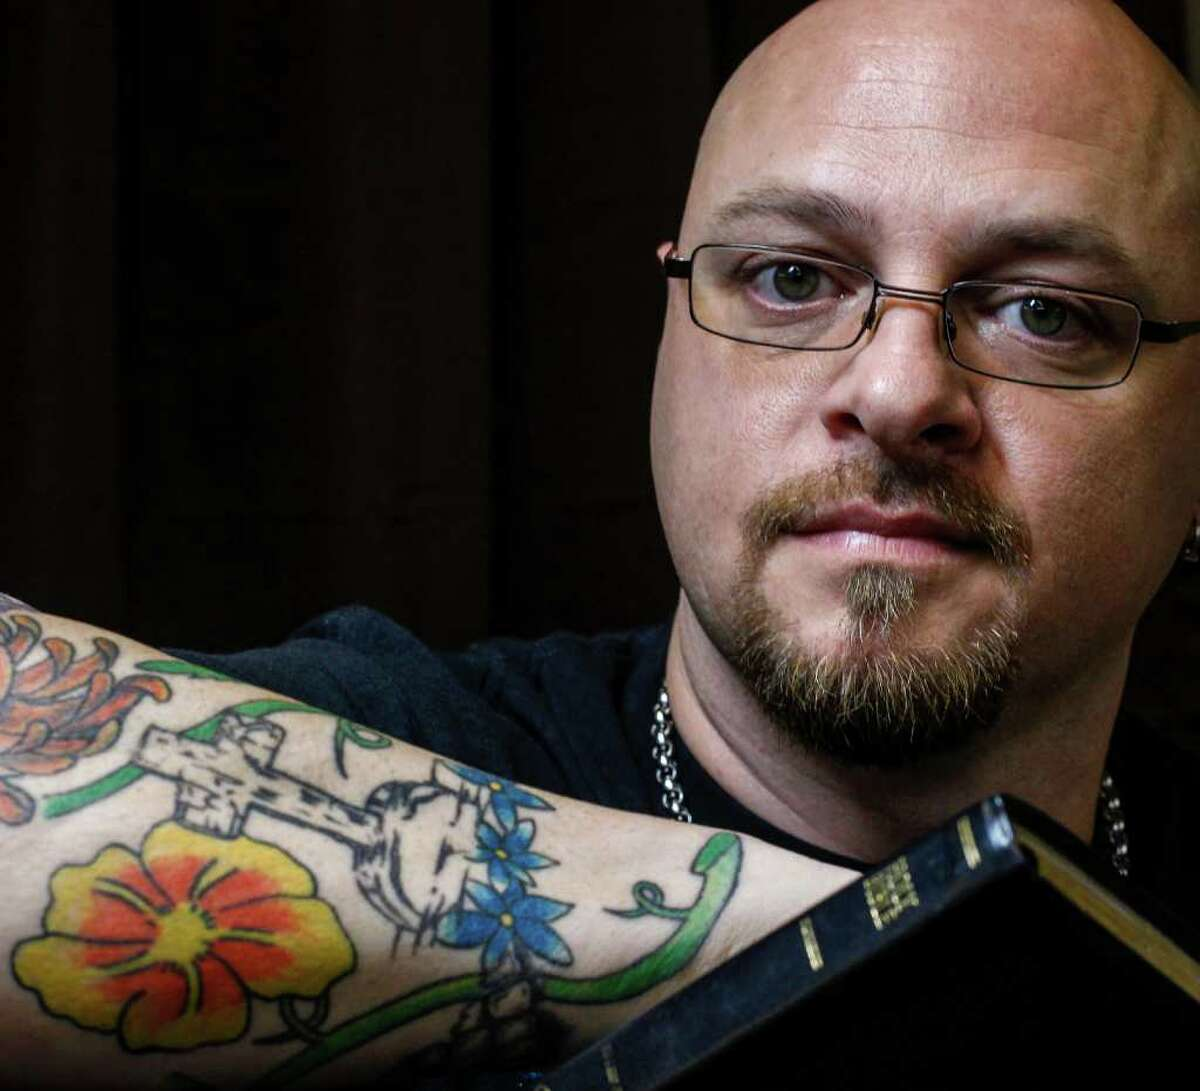 Scott Hill poses for a photo inside his tattoo studio Anointed Ink, which is marketed as a Christian business without rap music, nudity or lewd messages, Tuesday, Jan. 17, 2012, in Huffman. Hill, also a praise and worship leader at his church, operates the studio out of his own faith and as a family-friendly places to get ink. ( Michael Paulsen / Houston Chronicle )